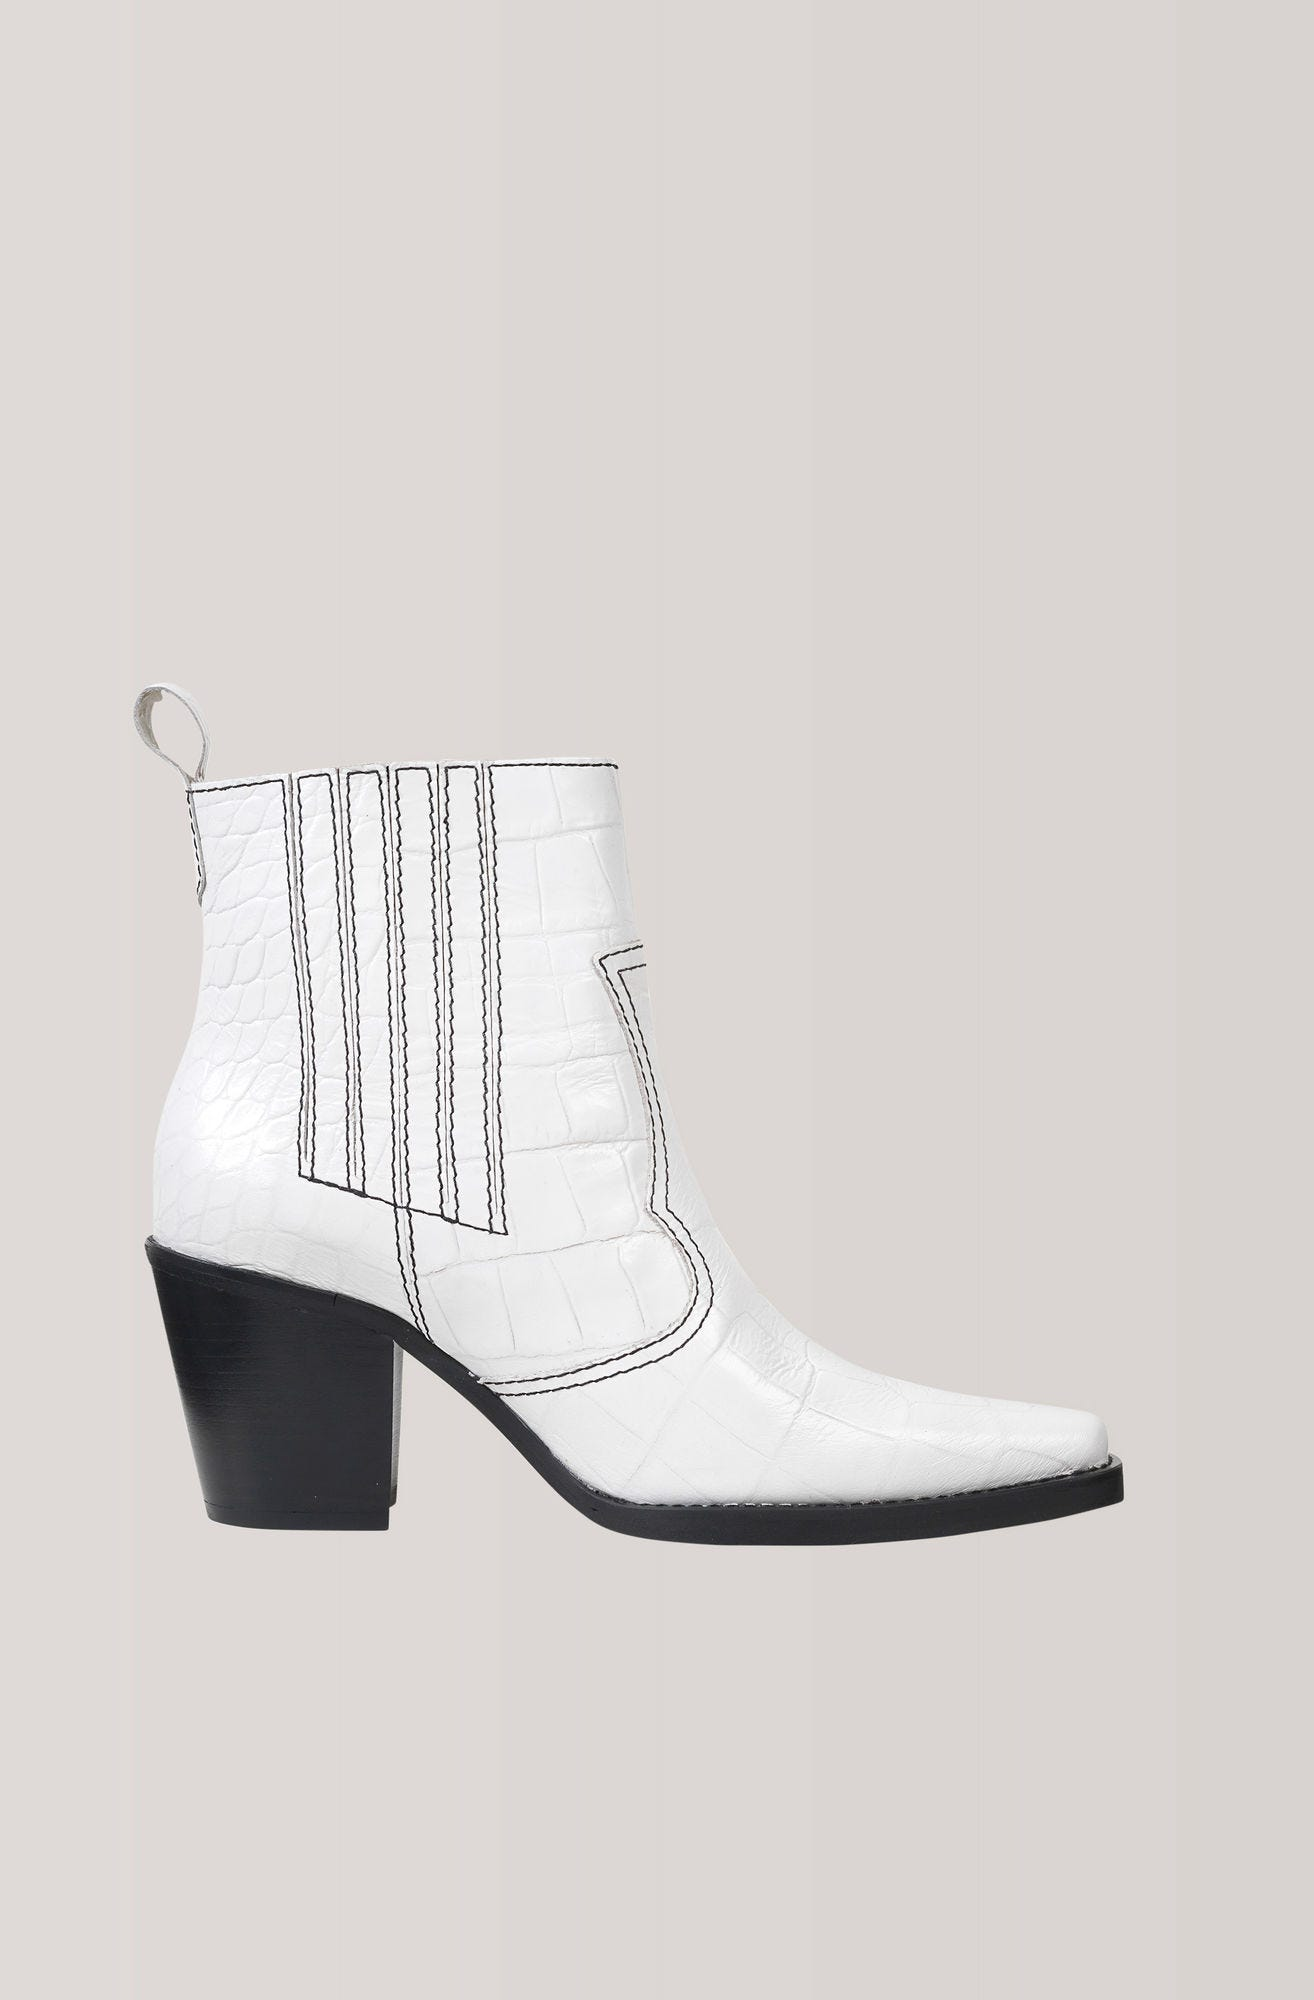 b153ea2367a White Boot Trend Fall 2018 For Women